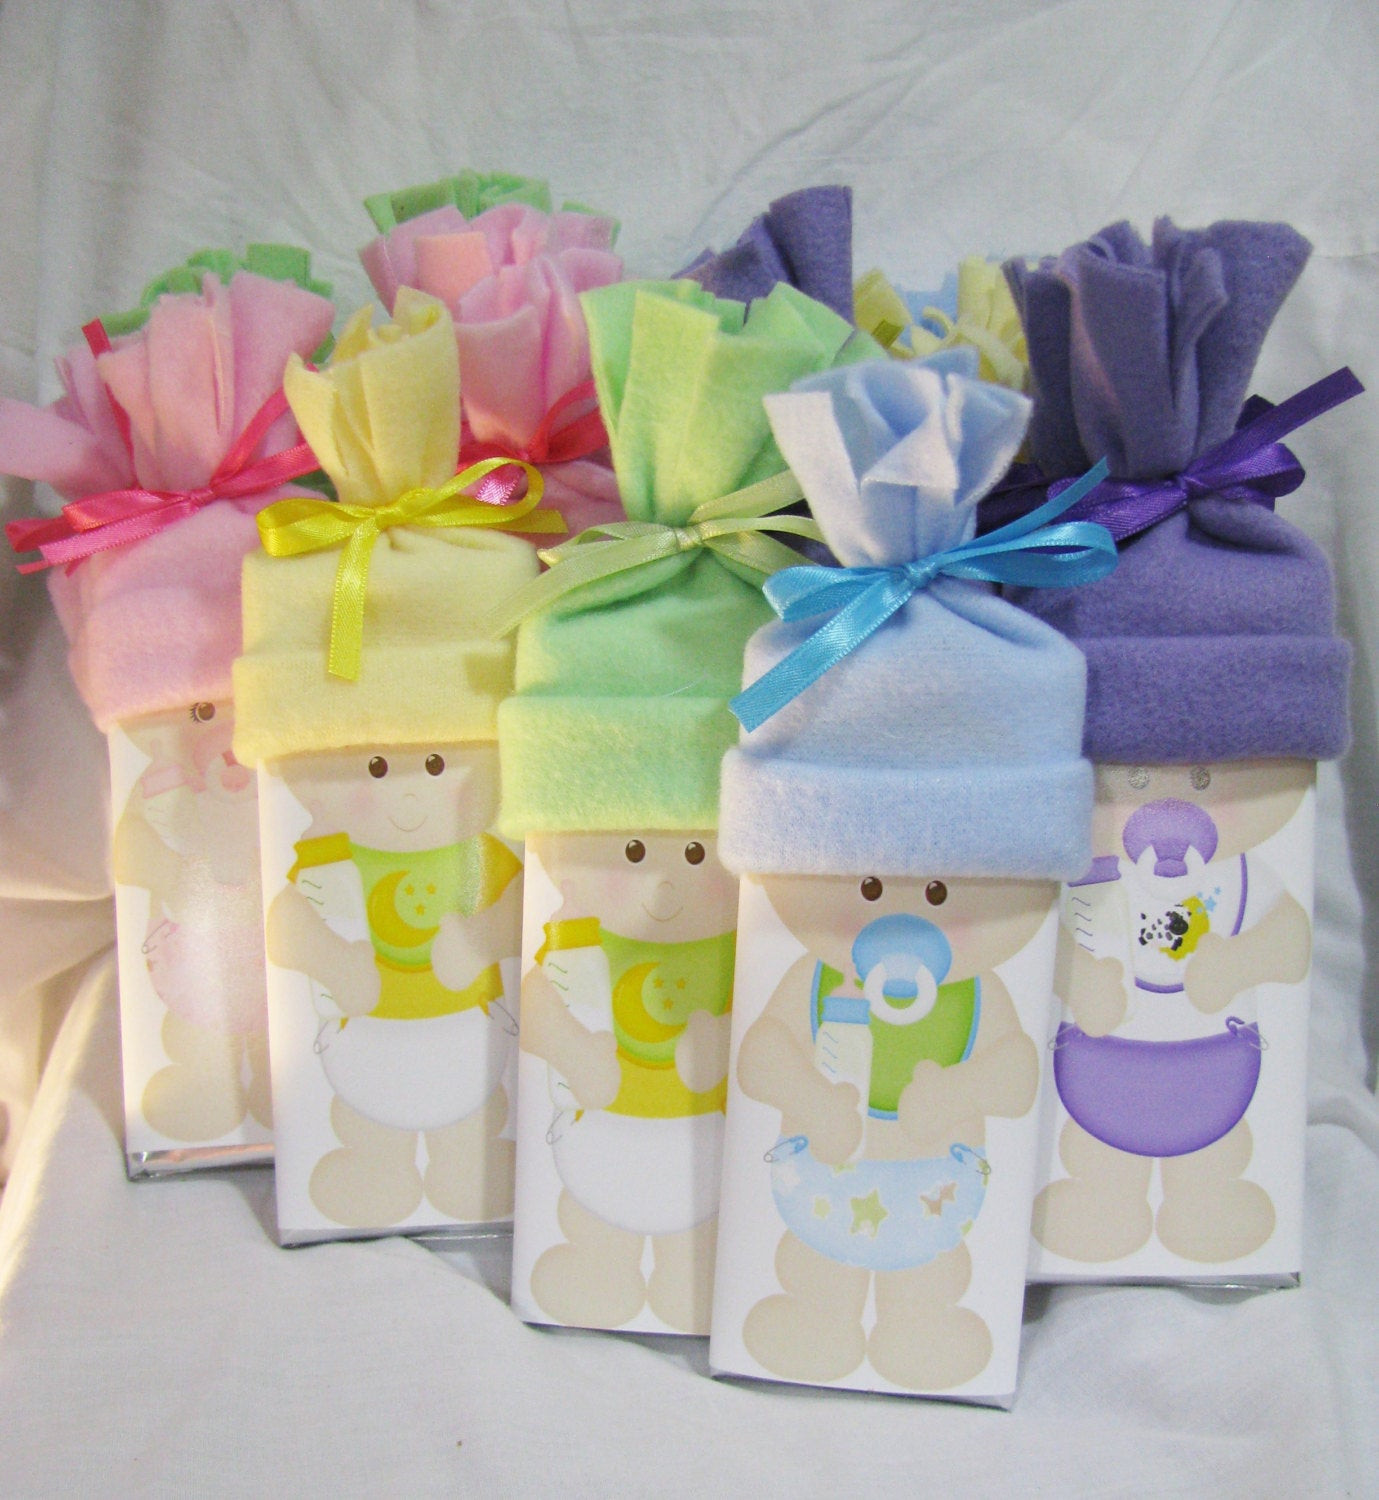 Gender Reveal Party Favor Ideas  Baby Reveal Party Favors Gender Reveal Party Favors